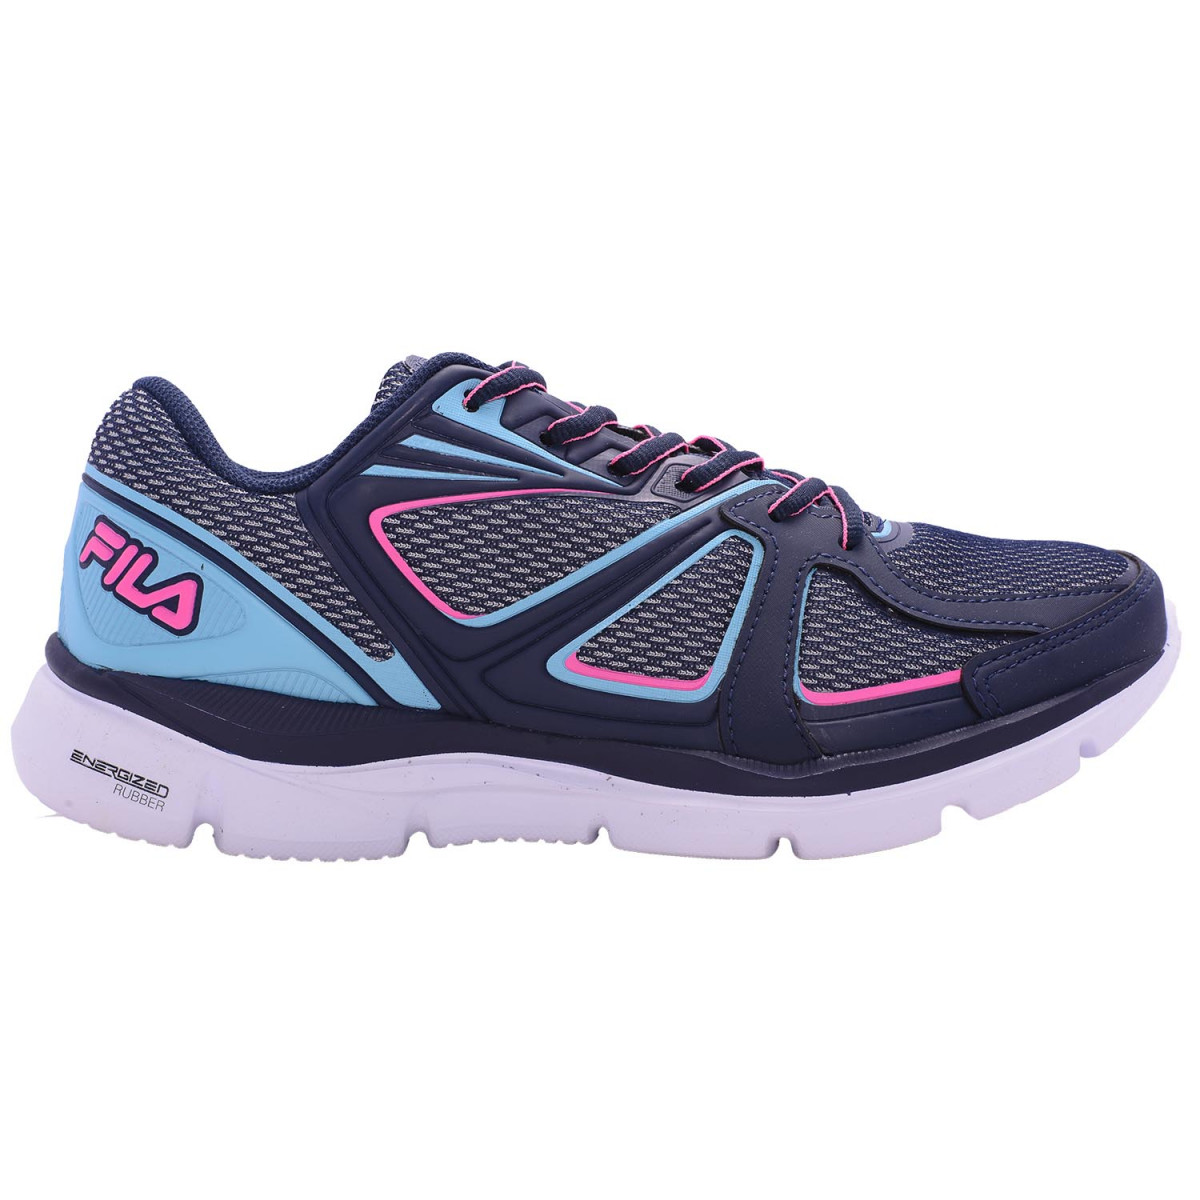 Zapatillas Fila Reach Super Foam